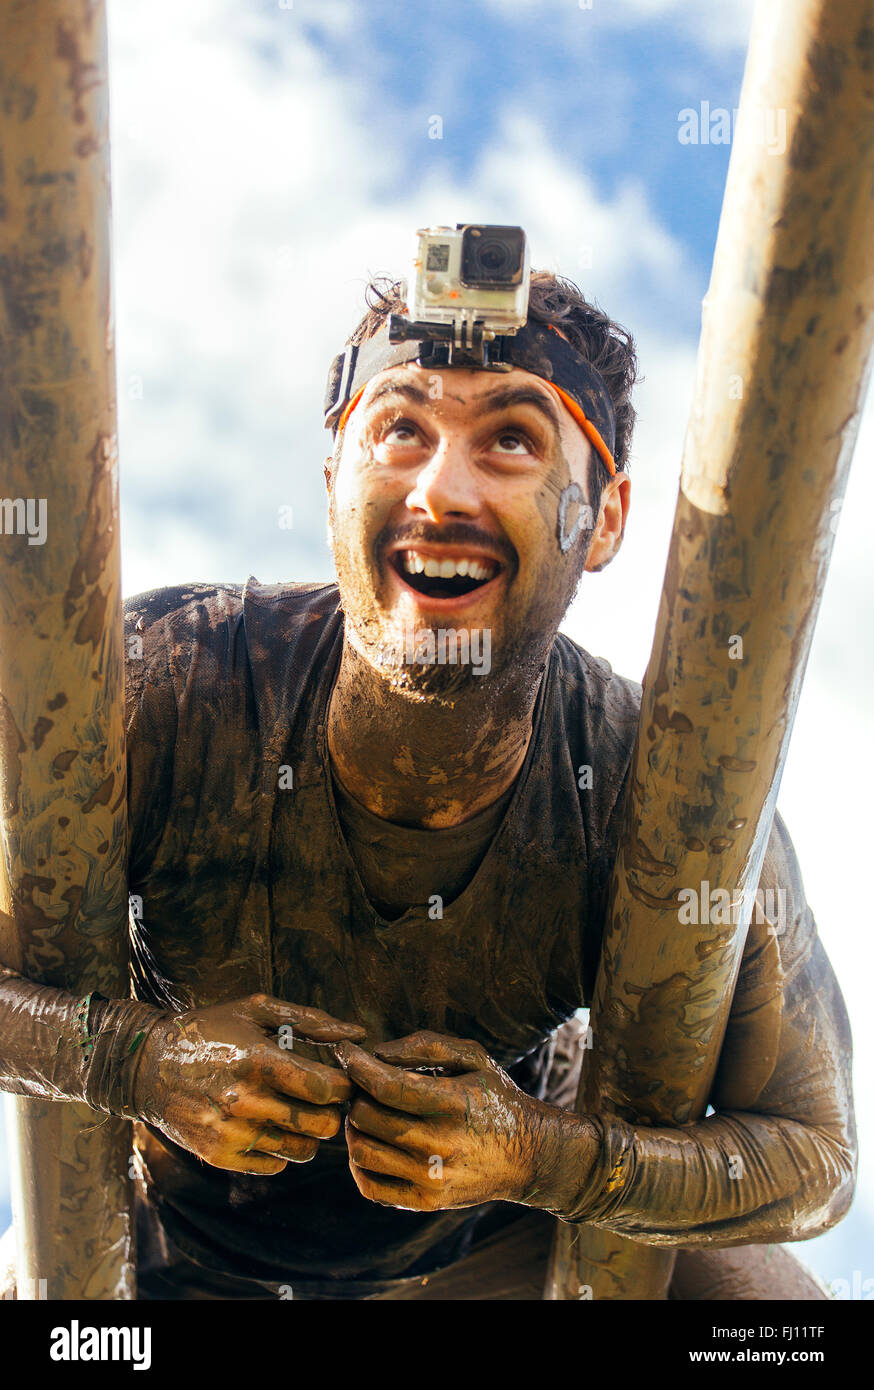 Participants in extreme obstacle race climbing on monkey bars - Stock Image